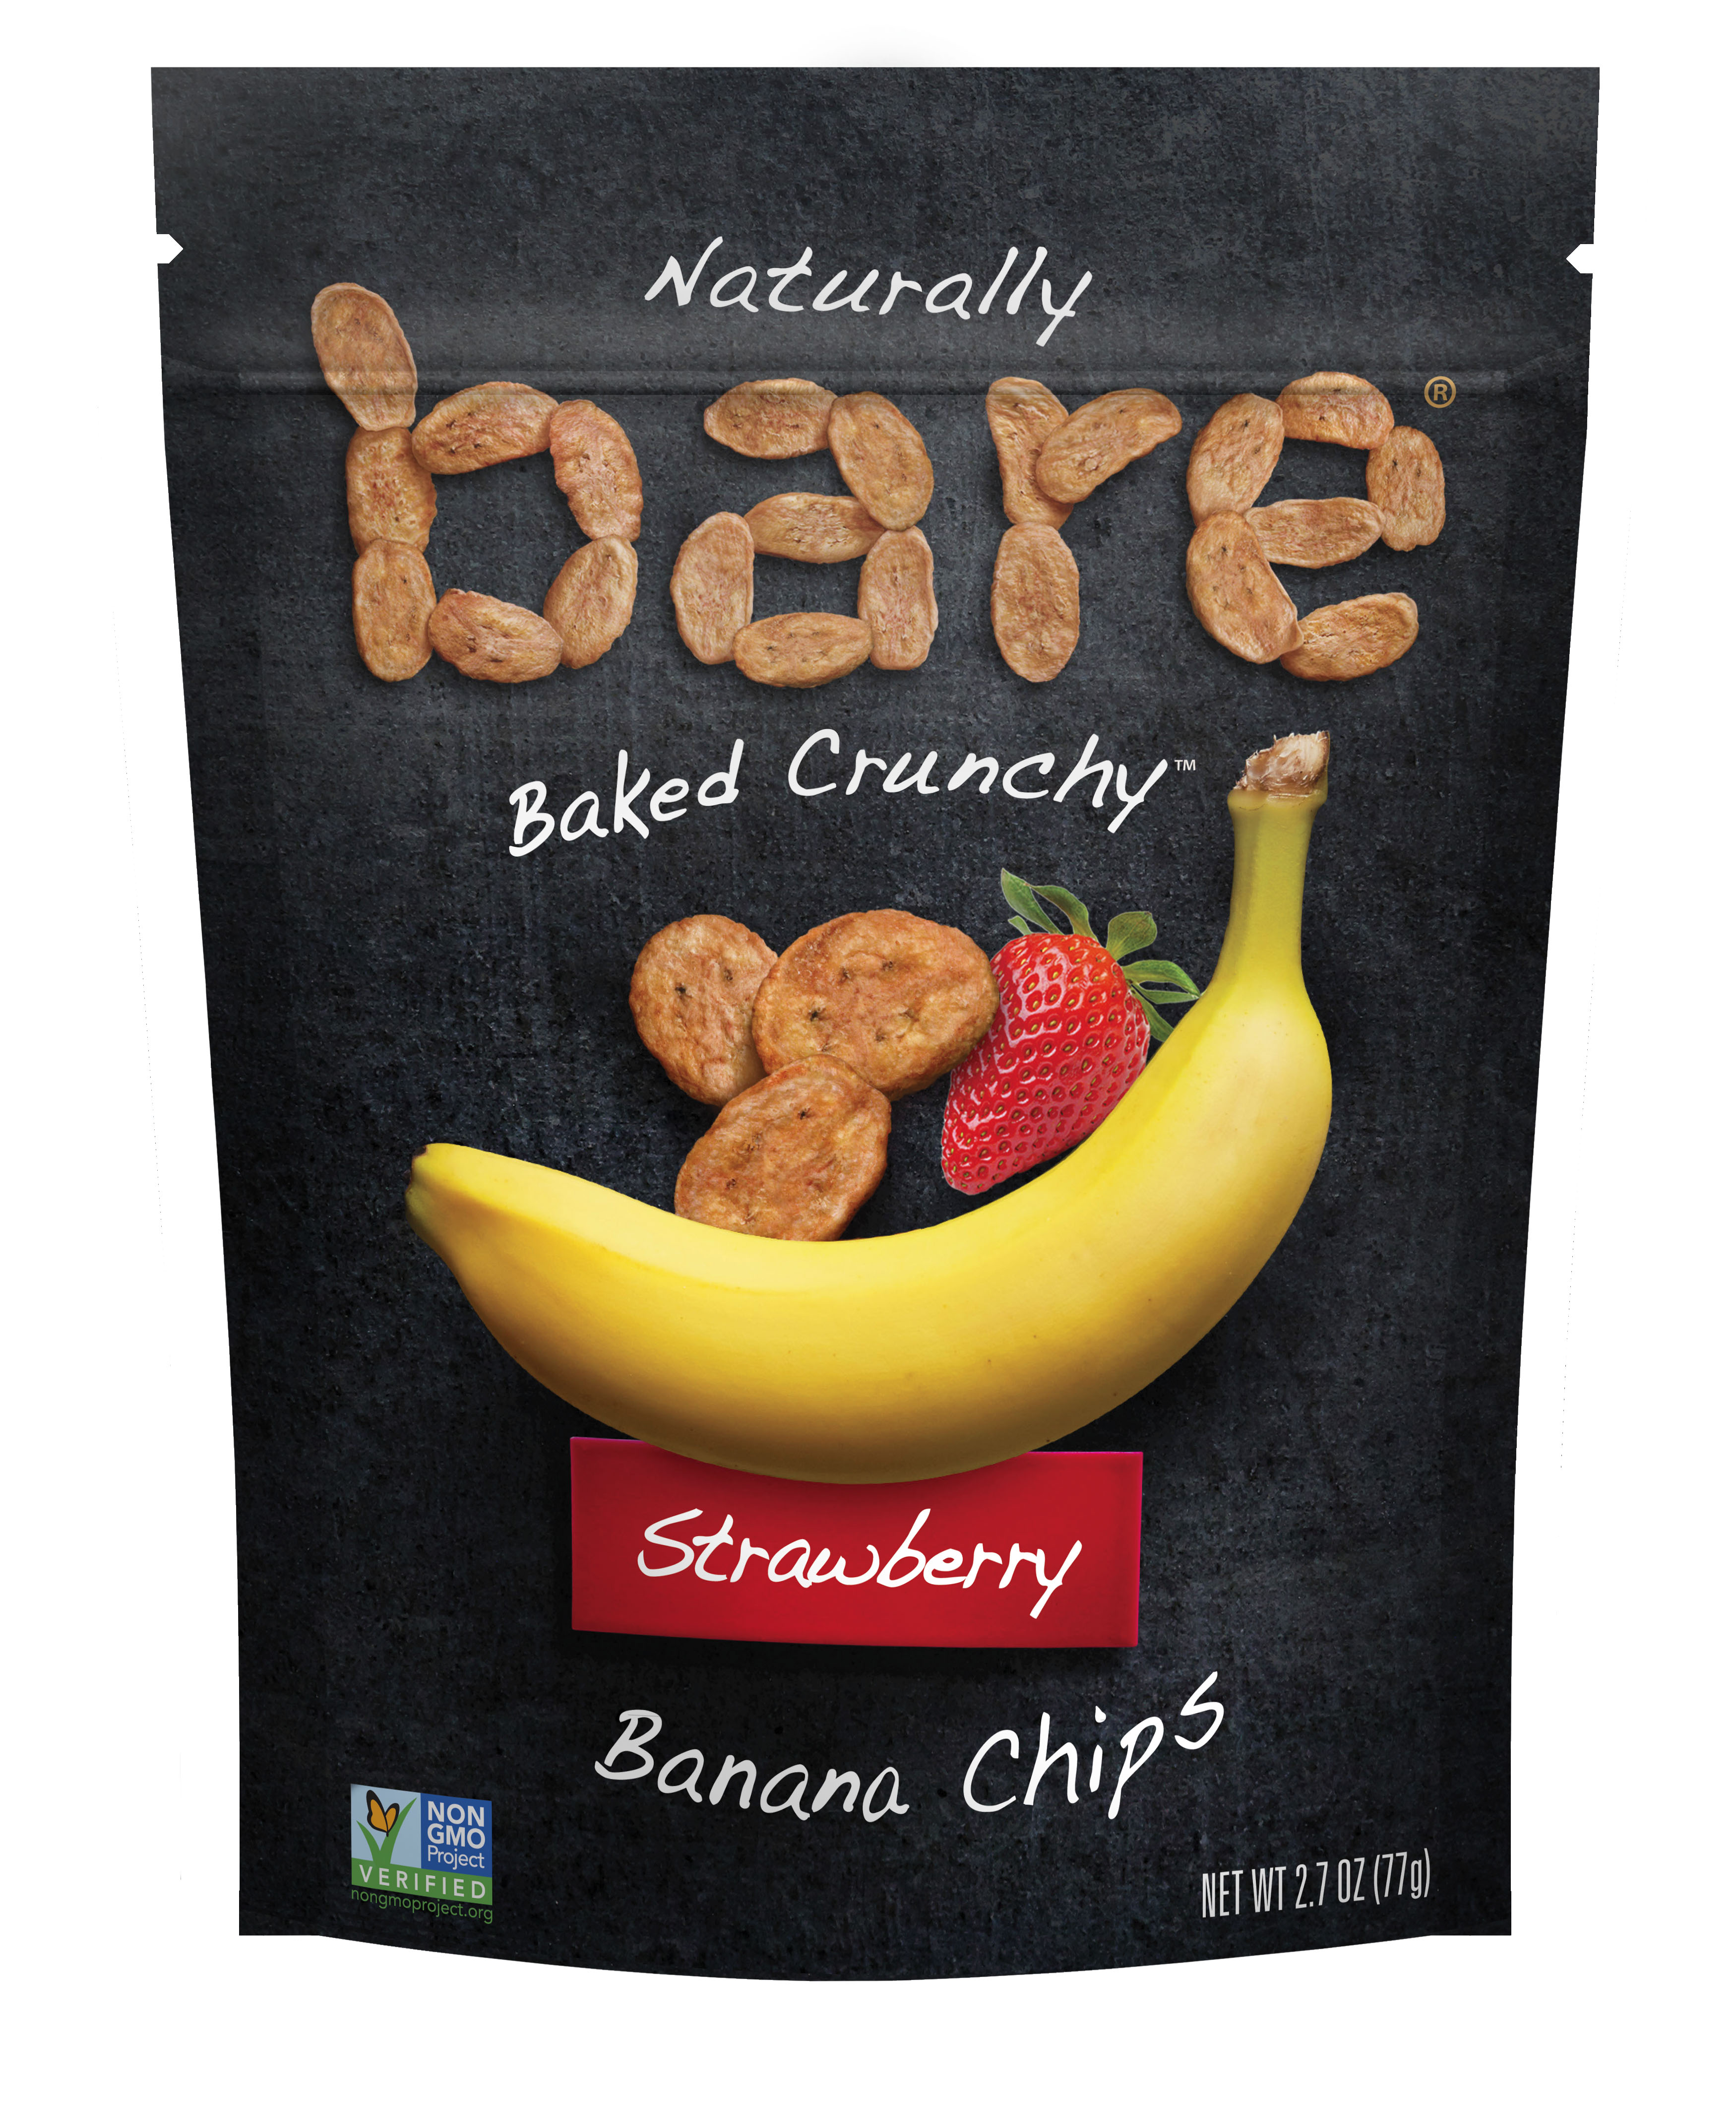 Bare Snacks® Launches New Twist on Classic Combo with Strawberry Banana Chips